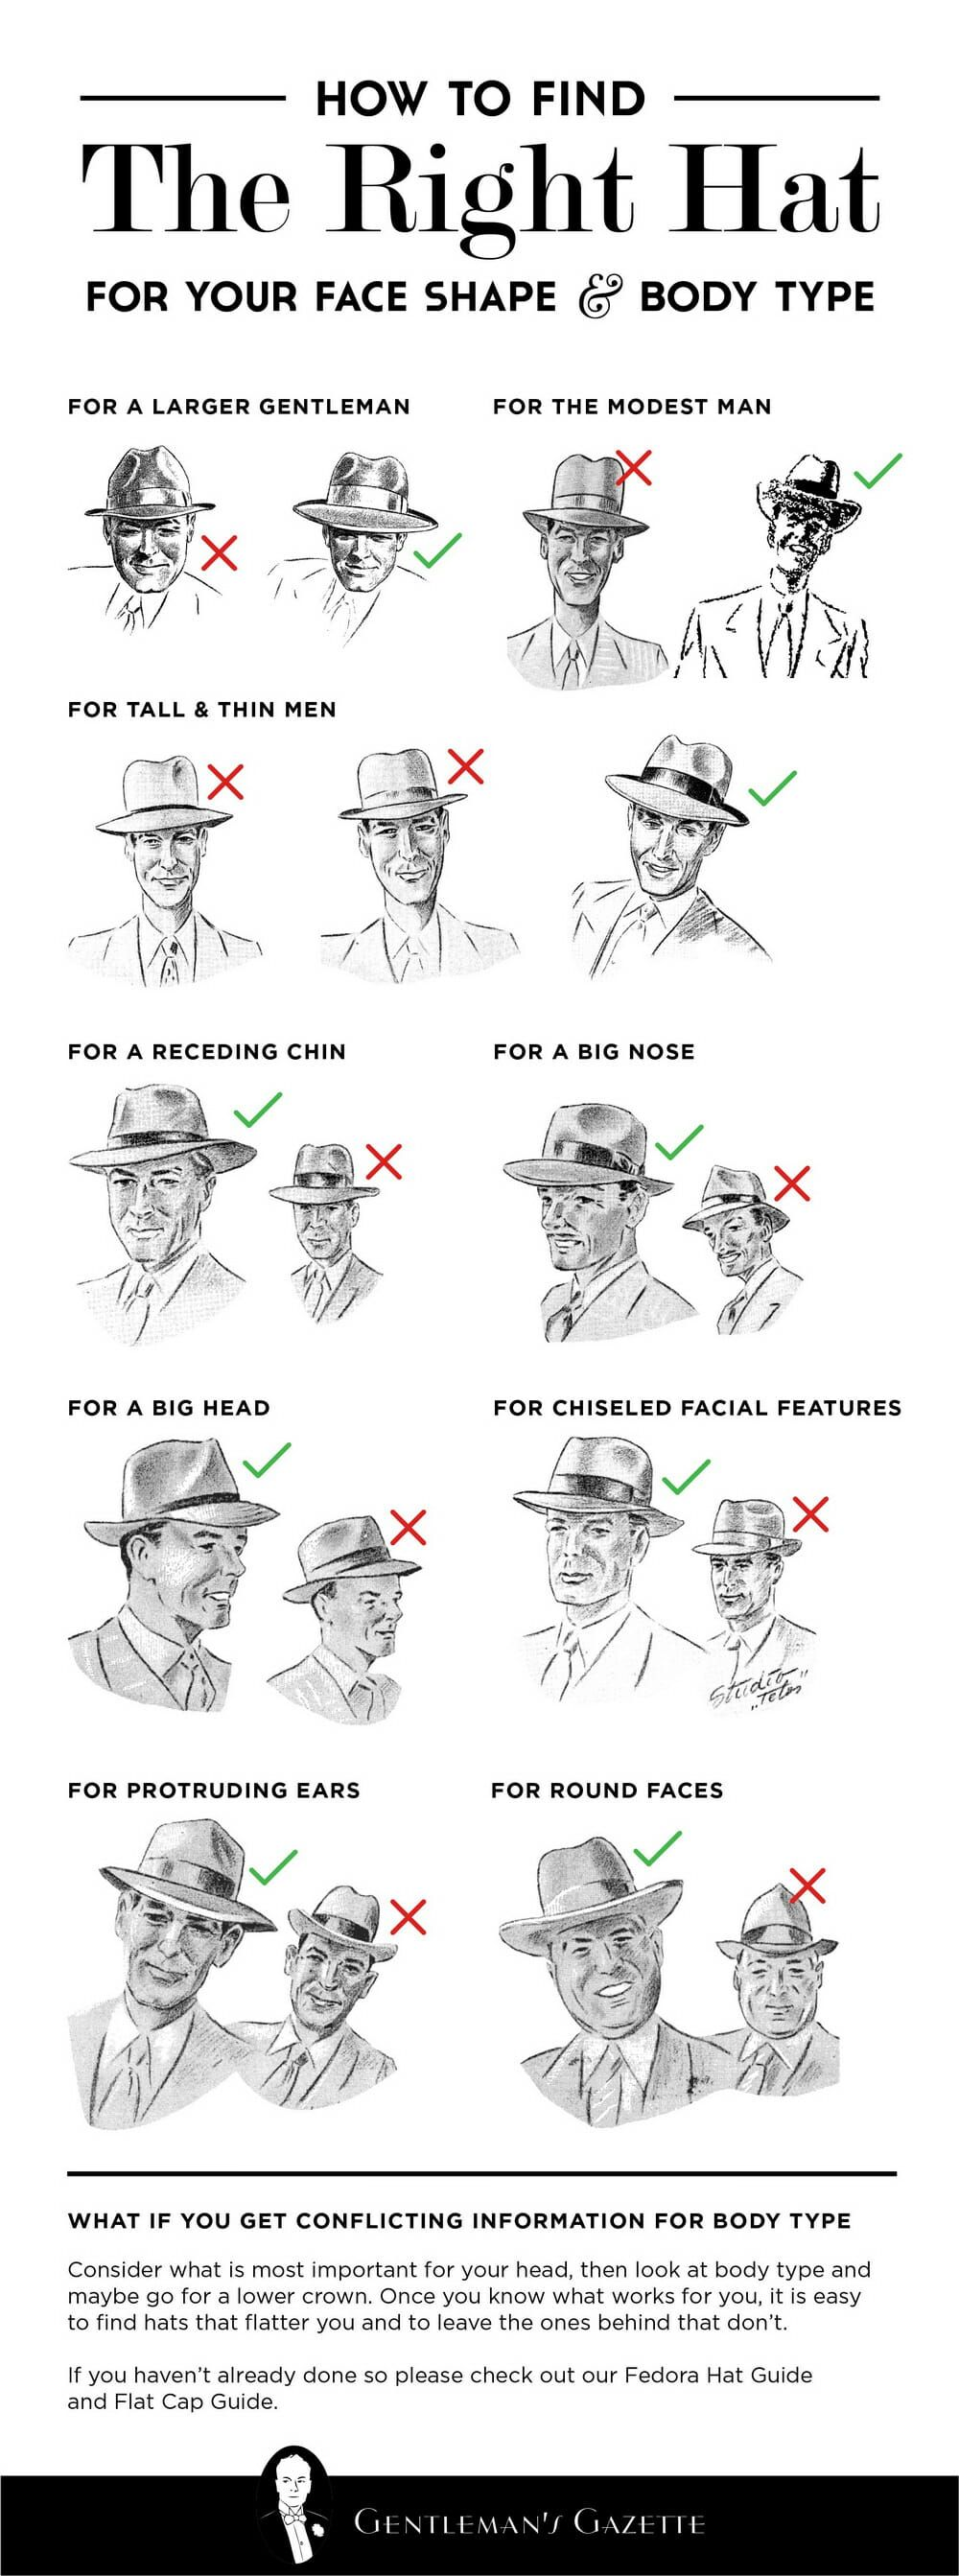 Pin By Mike Brown On Hute Face Shapes Body Types Male Face Shapes